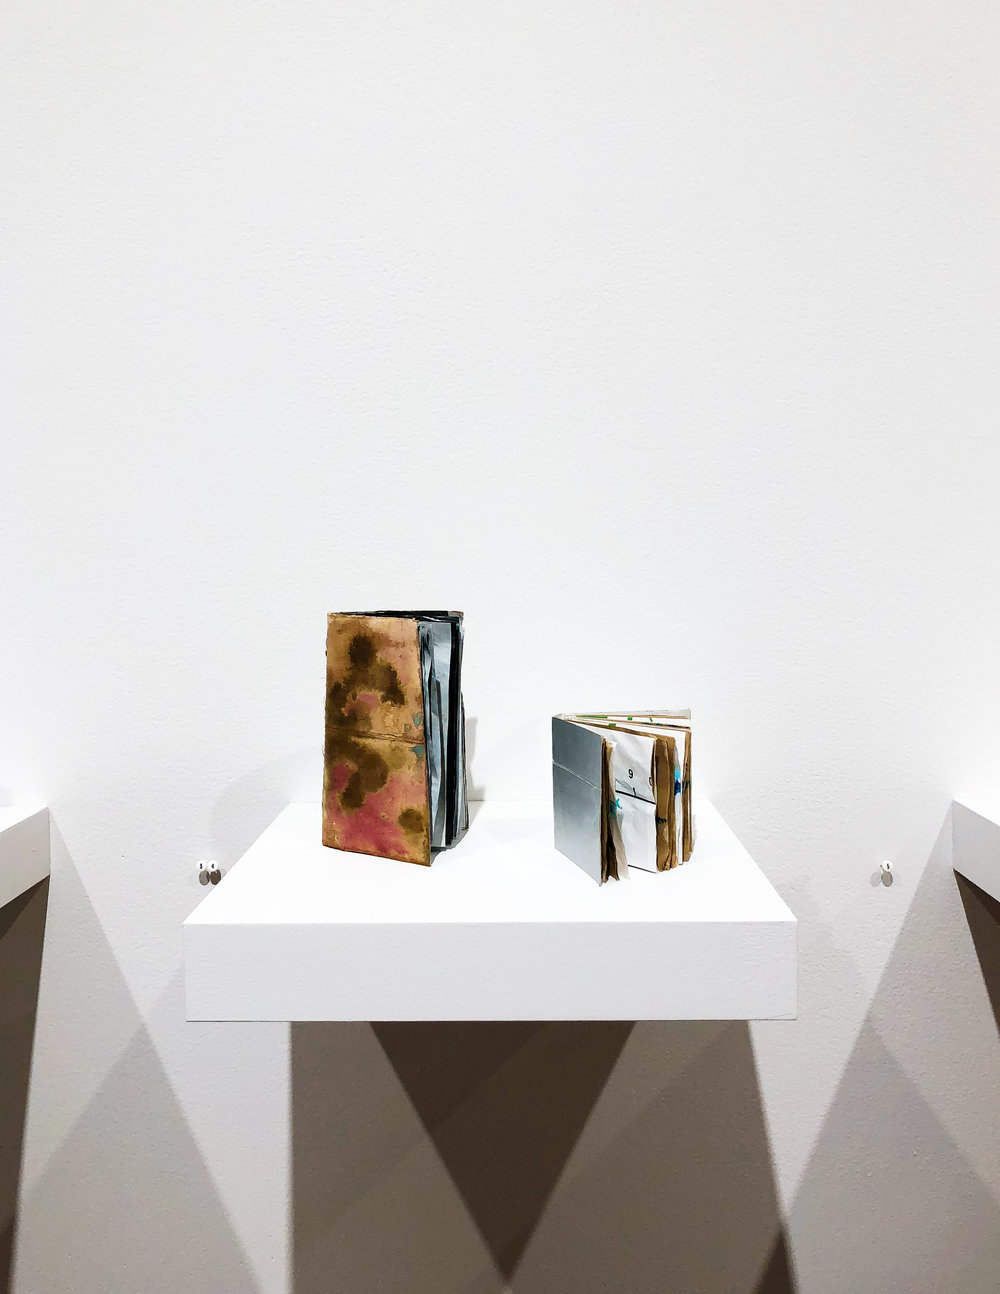 The colorful, recycled quality of these books is part of a stylistic theme that is present throughout the exhibit.